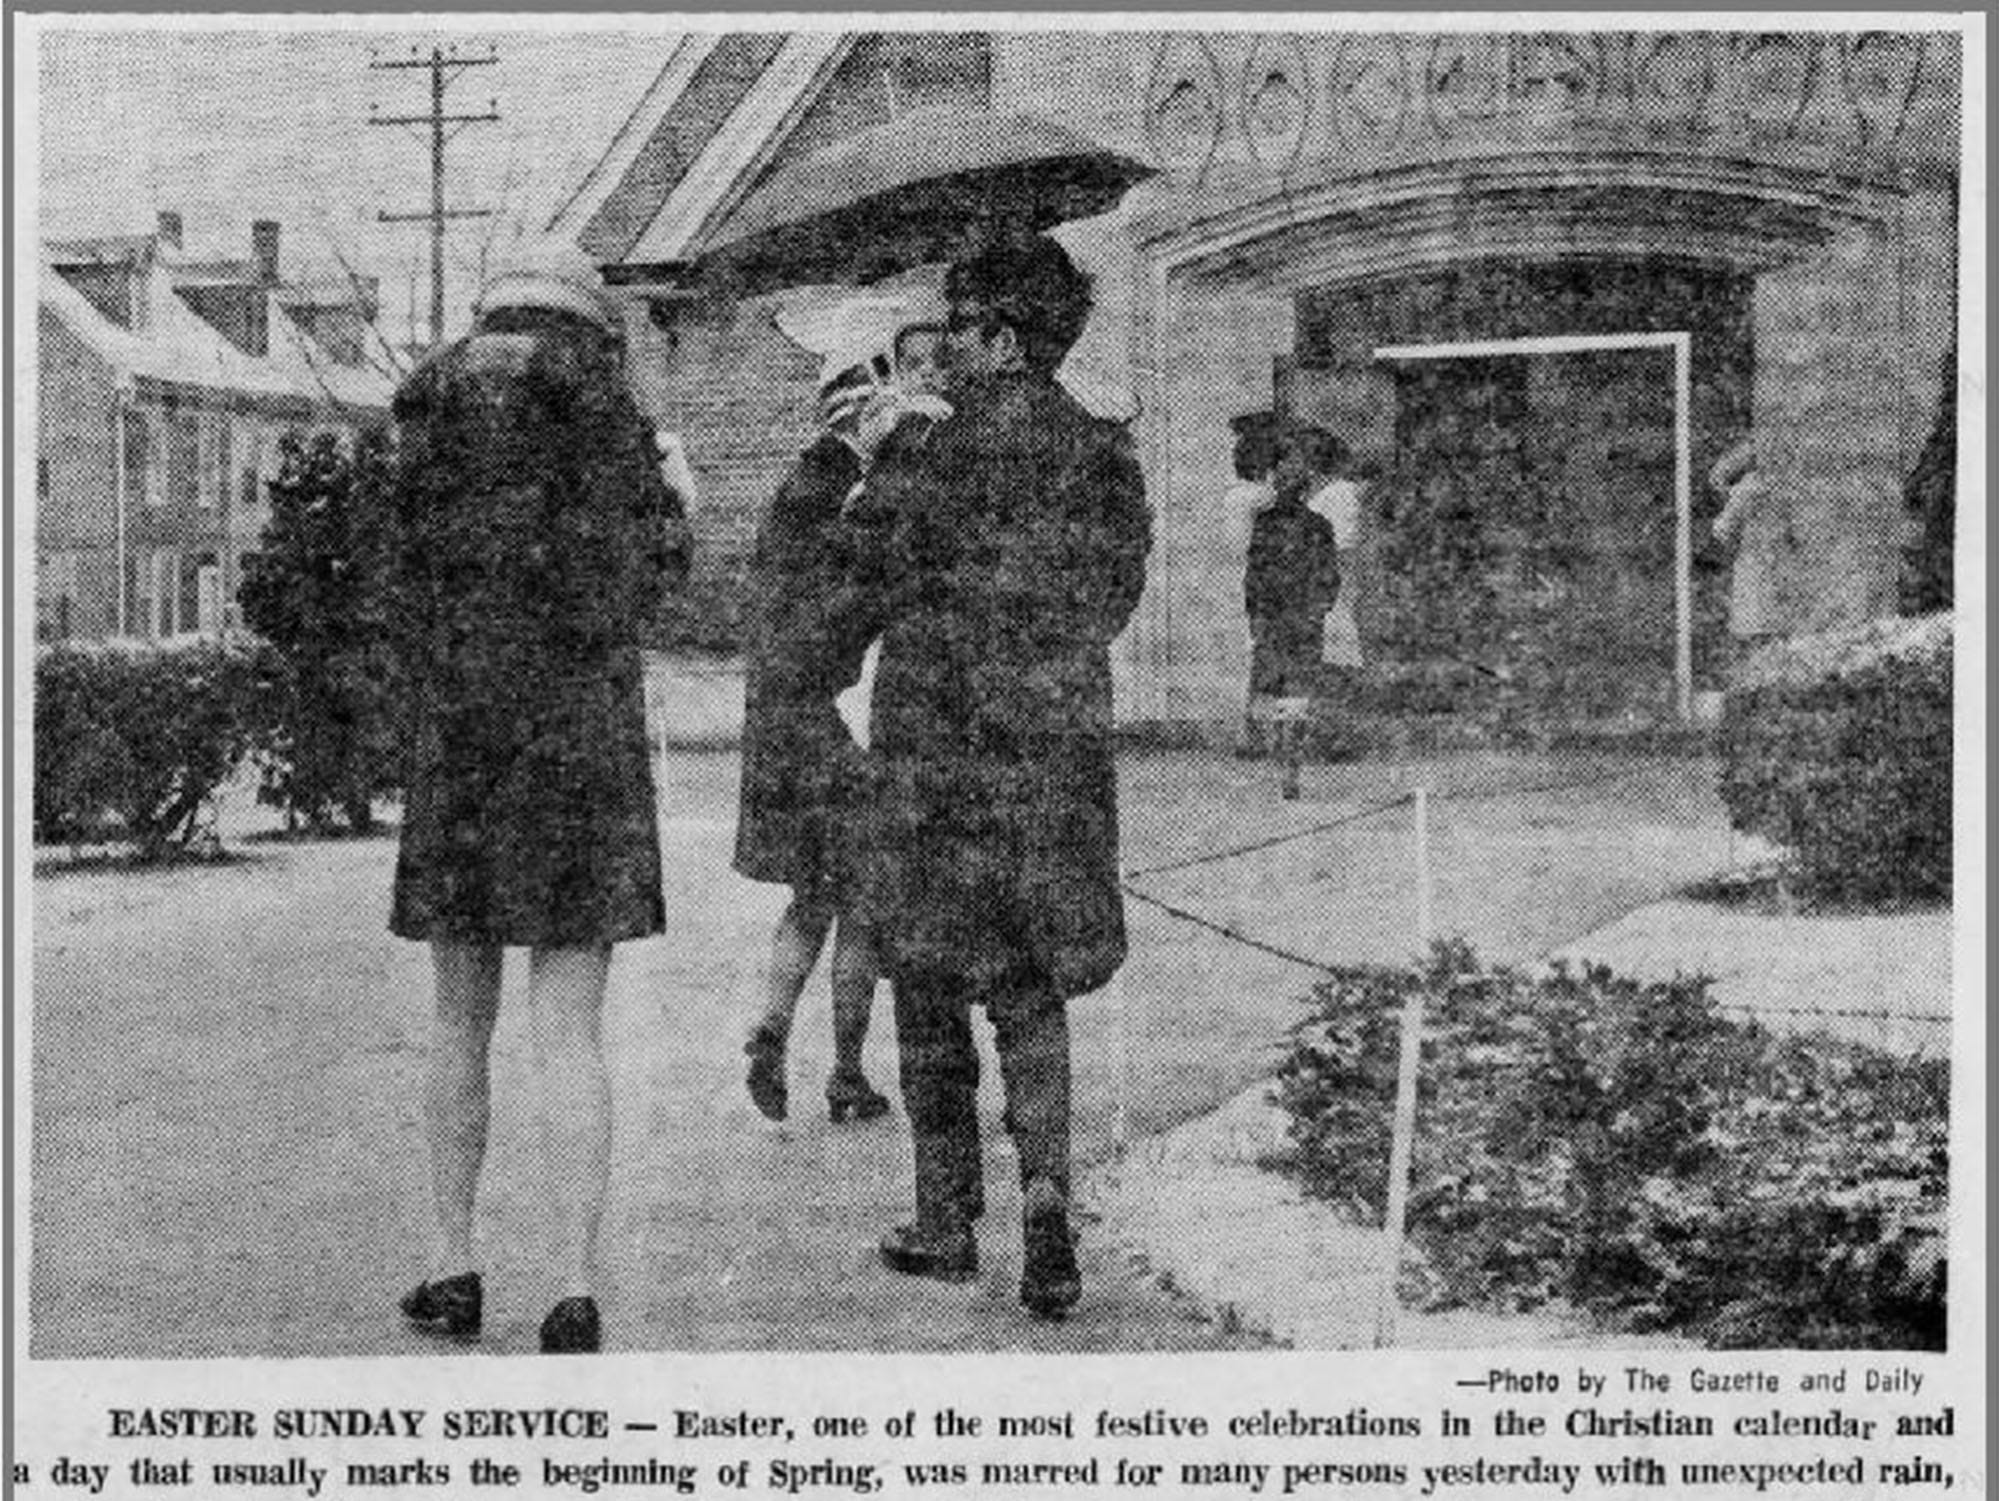 A snowy Easter in 1970 as seen in the Gazette and Daily.